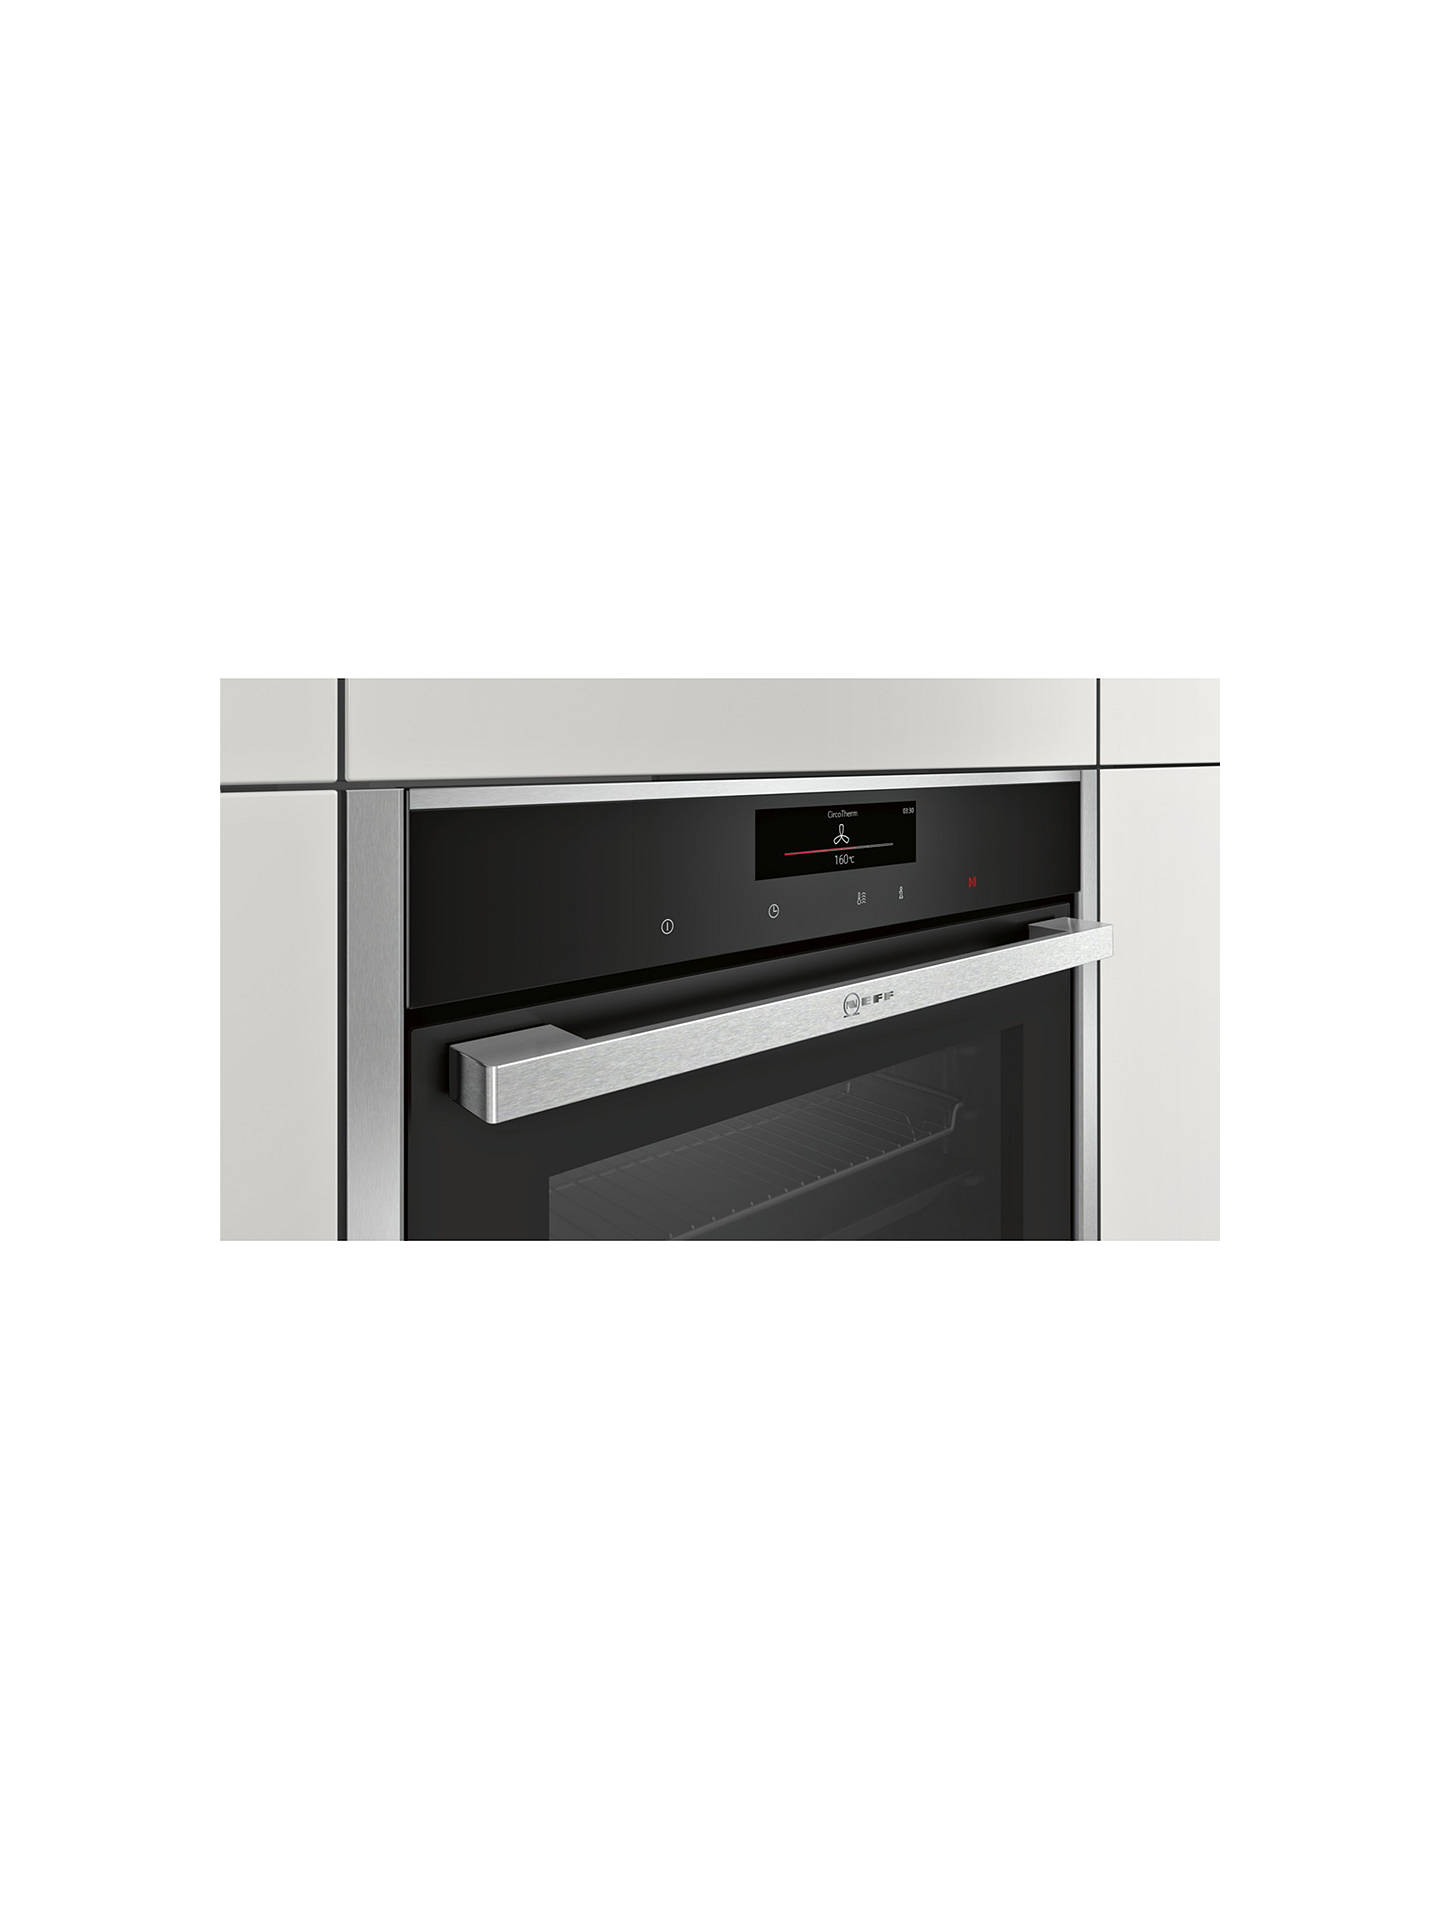 Neff C28ct26n0b Compact Easyclean Single Electric Oven Stainless